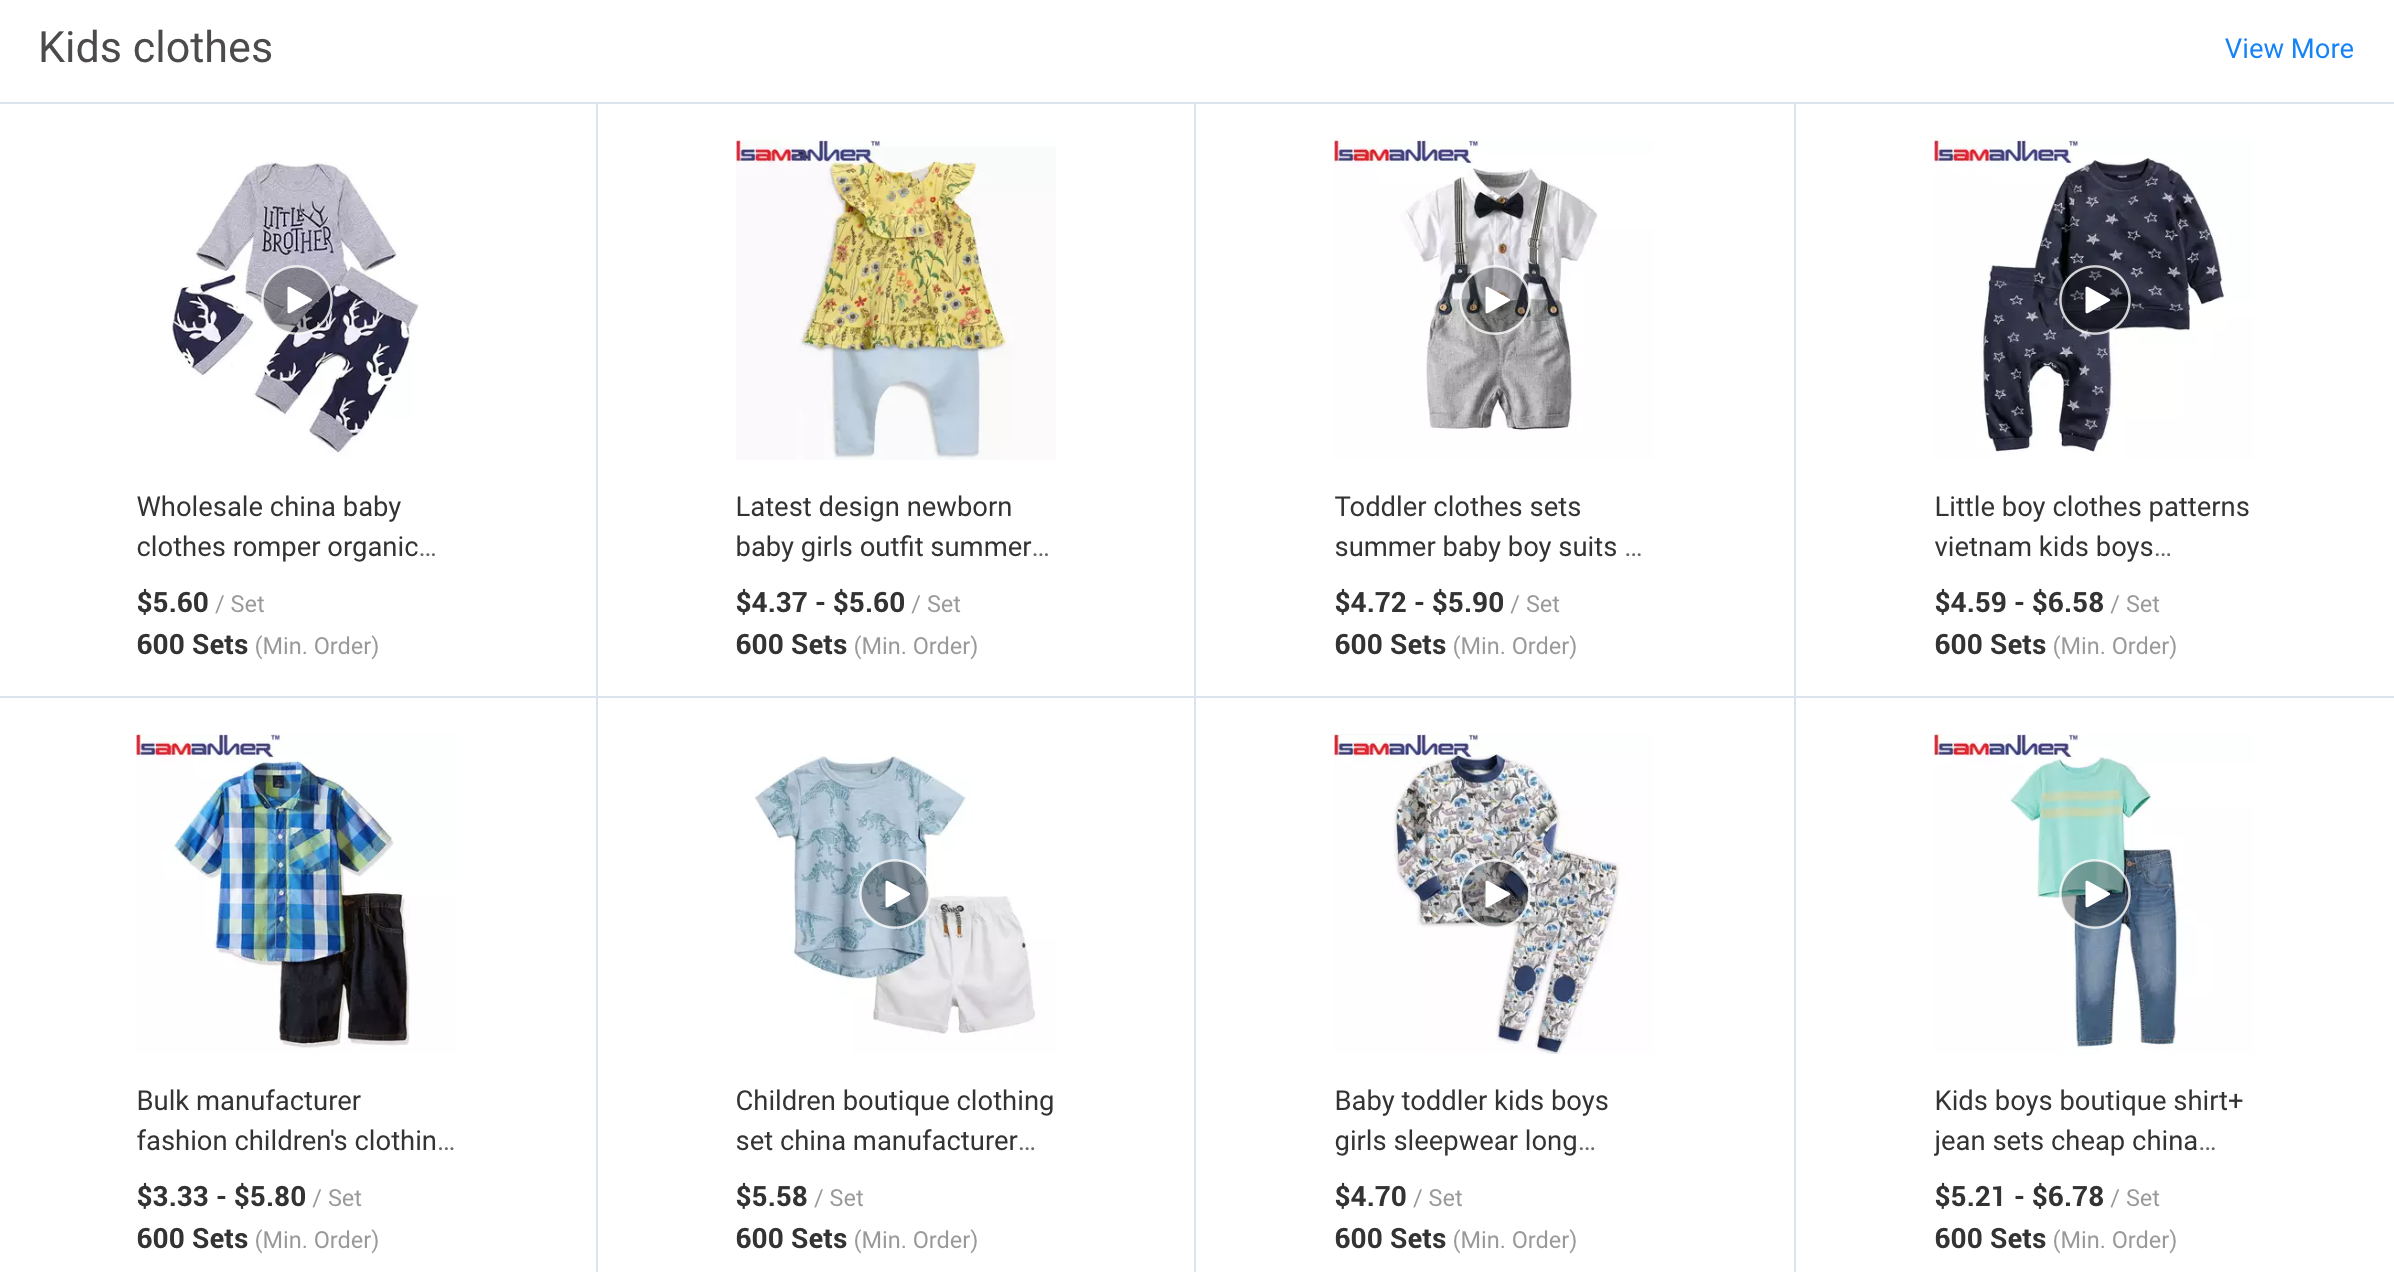 Example of Kids Clothes category page on Alibaba